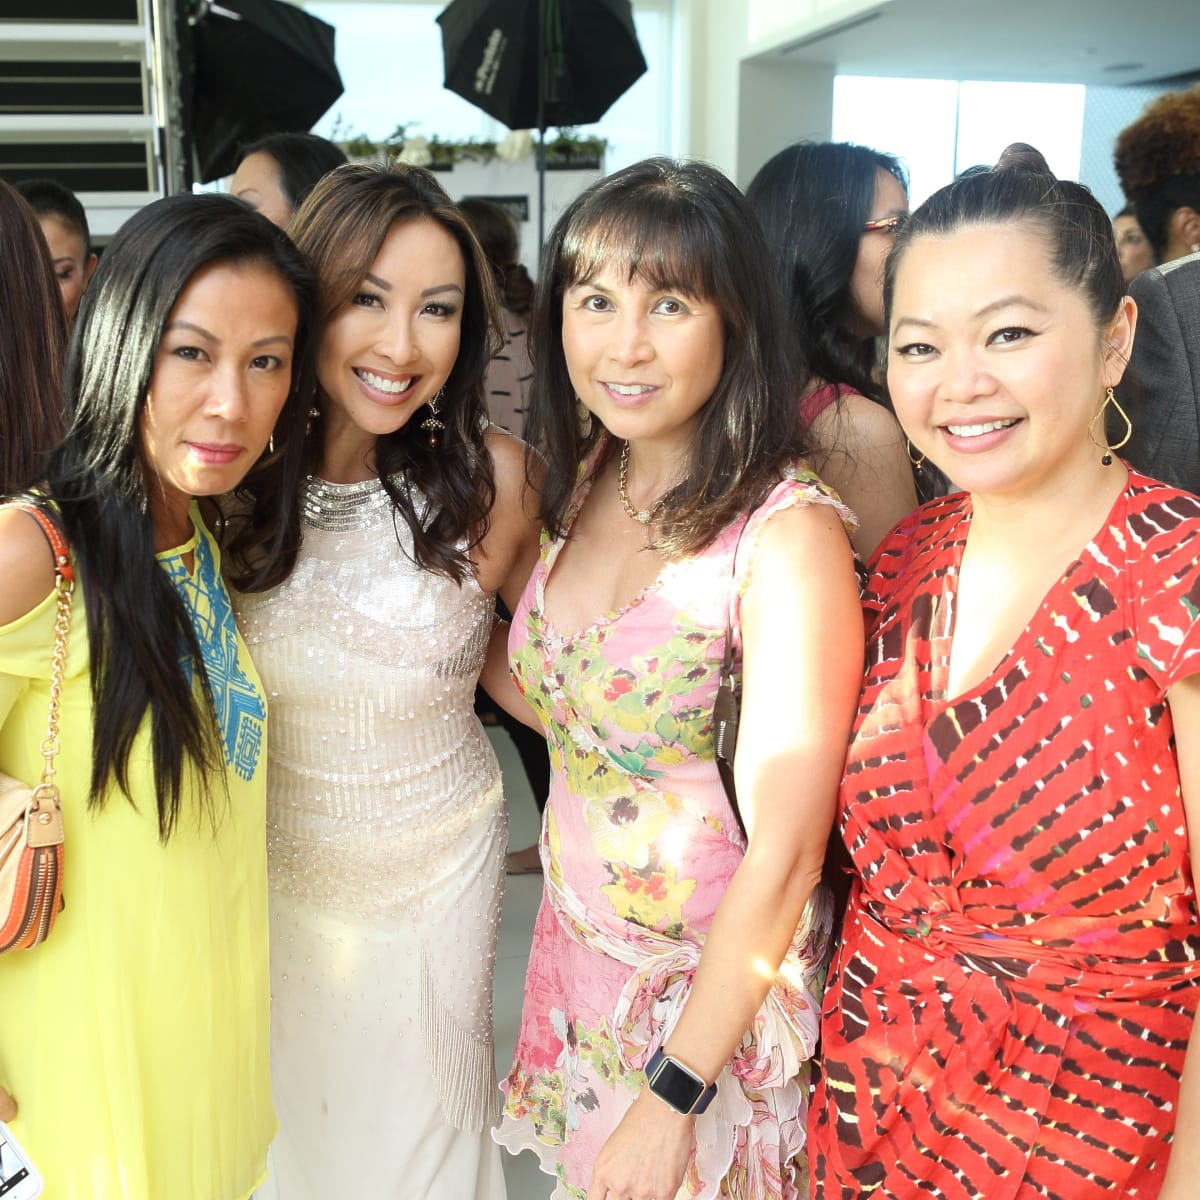 CKW Luxe Star Awards 6/16 Chau Nguyen, Lily Jang, Christine Delon, Chloe Dao